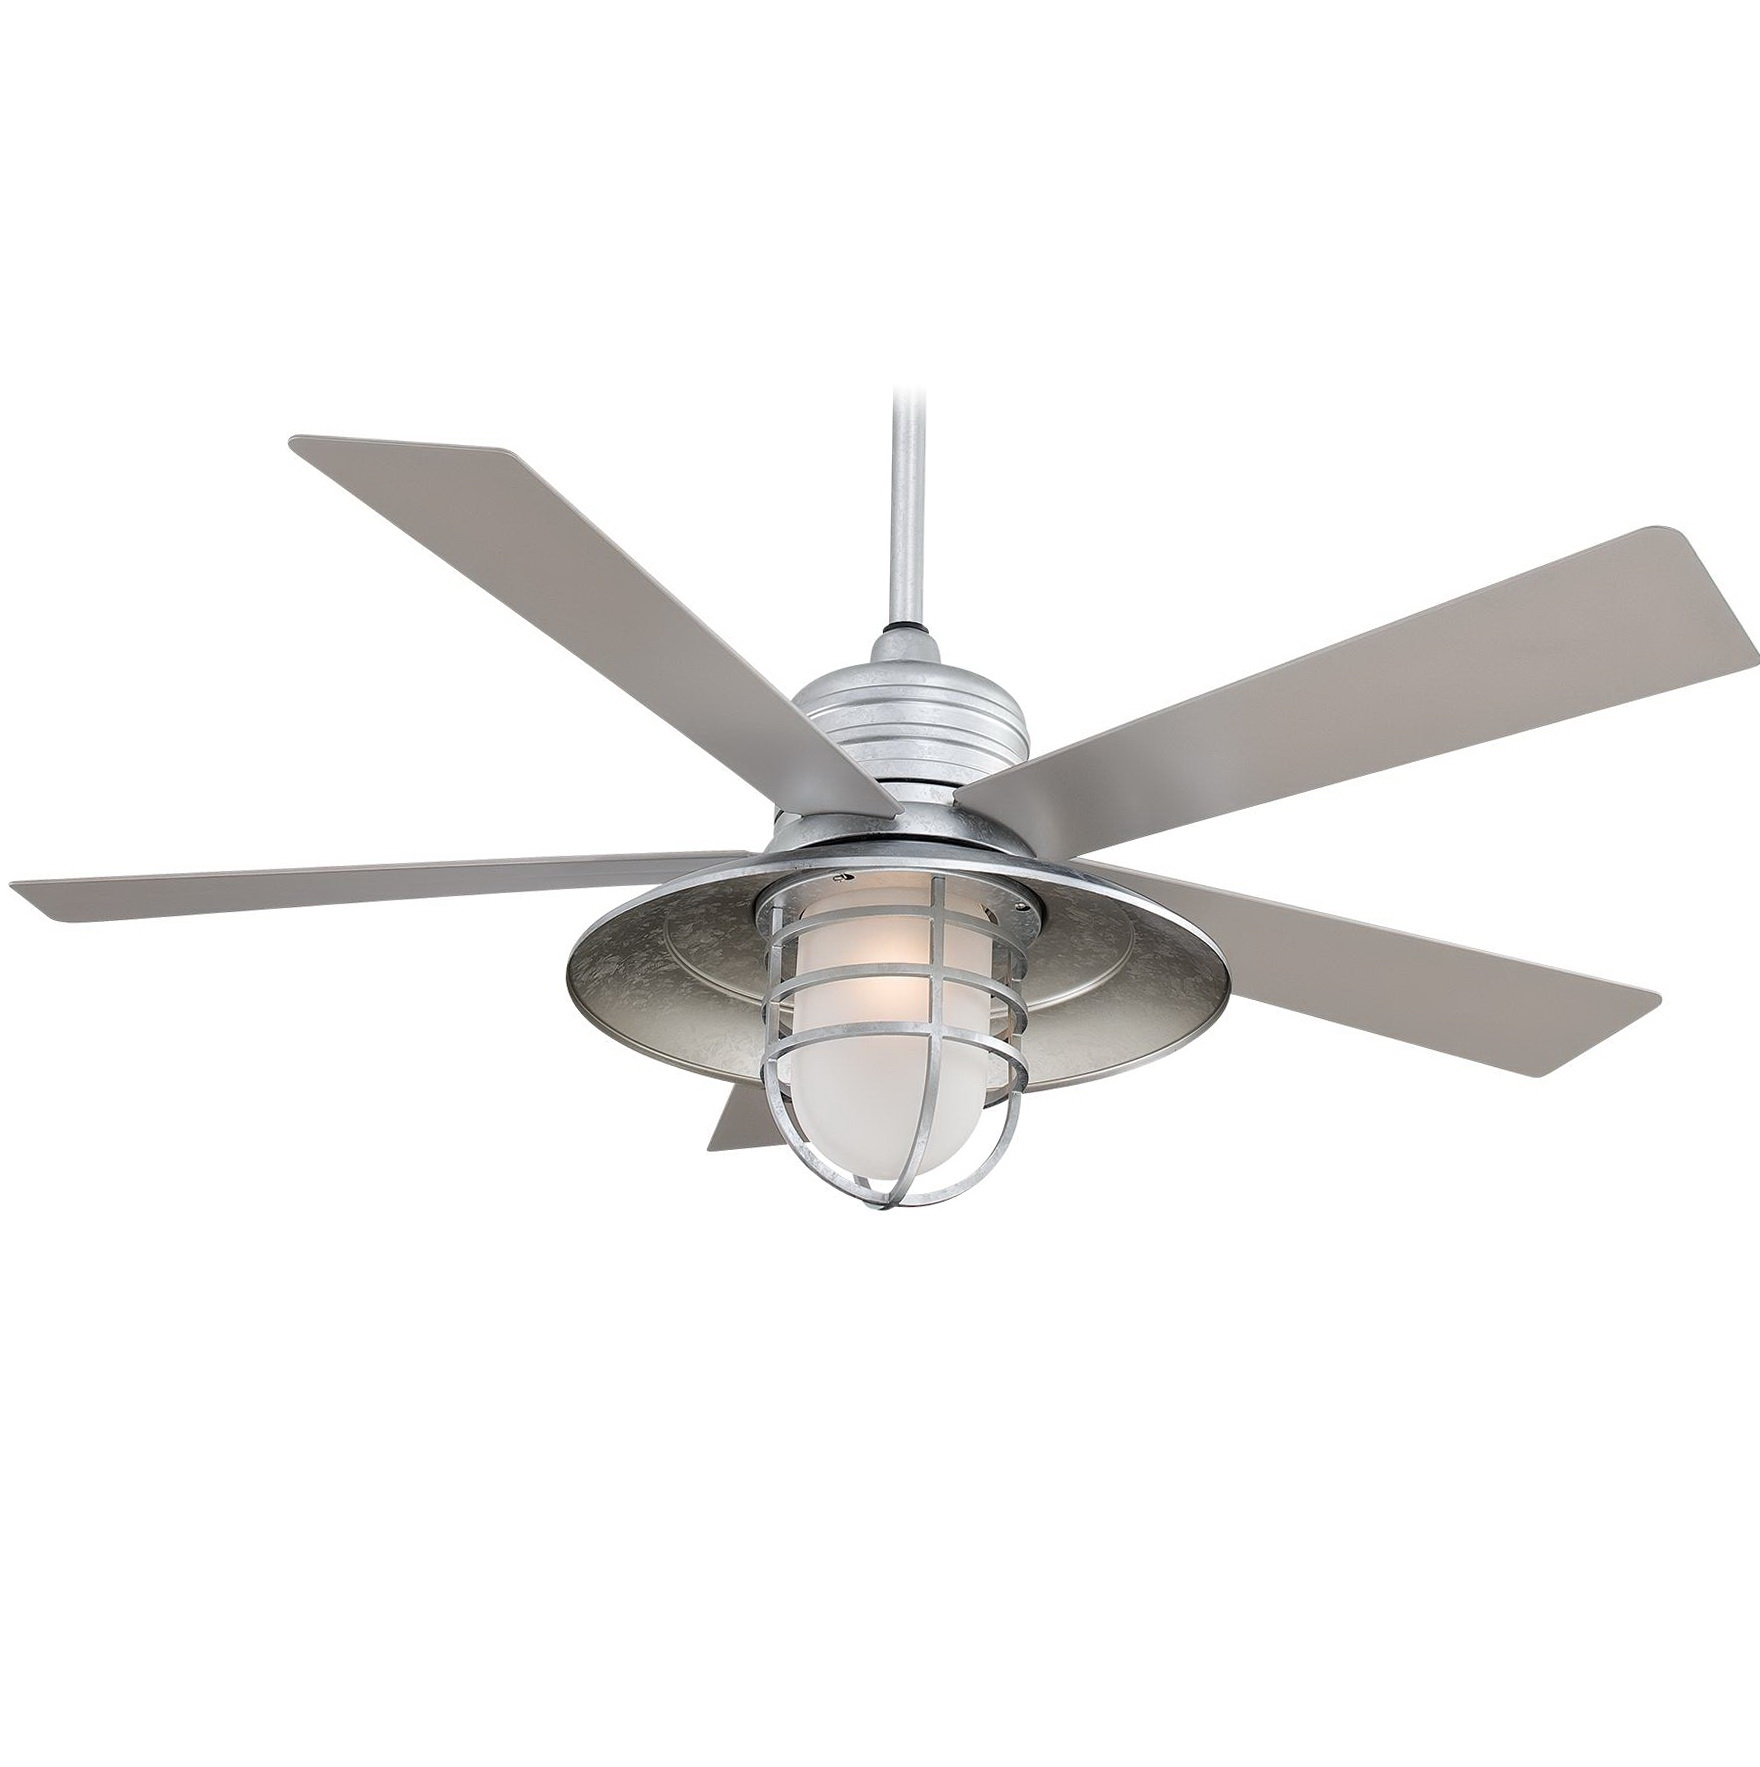 Outdoor Ceiling Fan With Light Kit – Outdoor Lighting Ideas For Popular 42 Outdoor Ceiling Fans With Light Kit (Gallery 12 of 20)